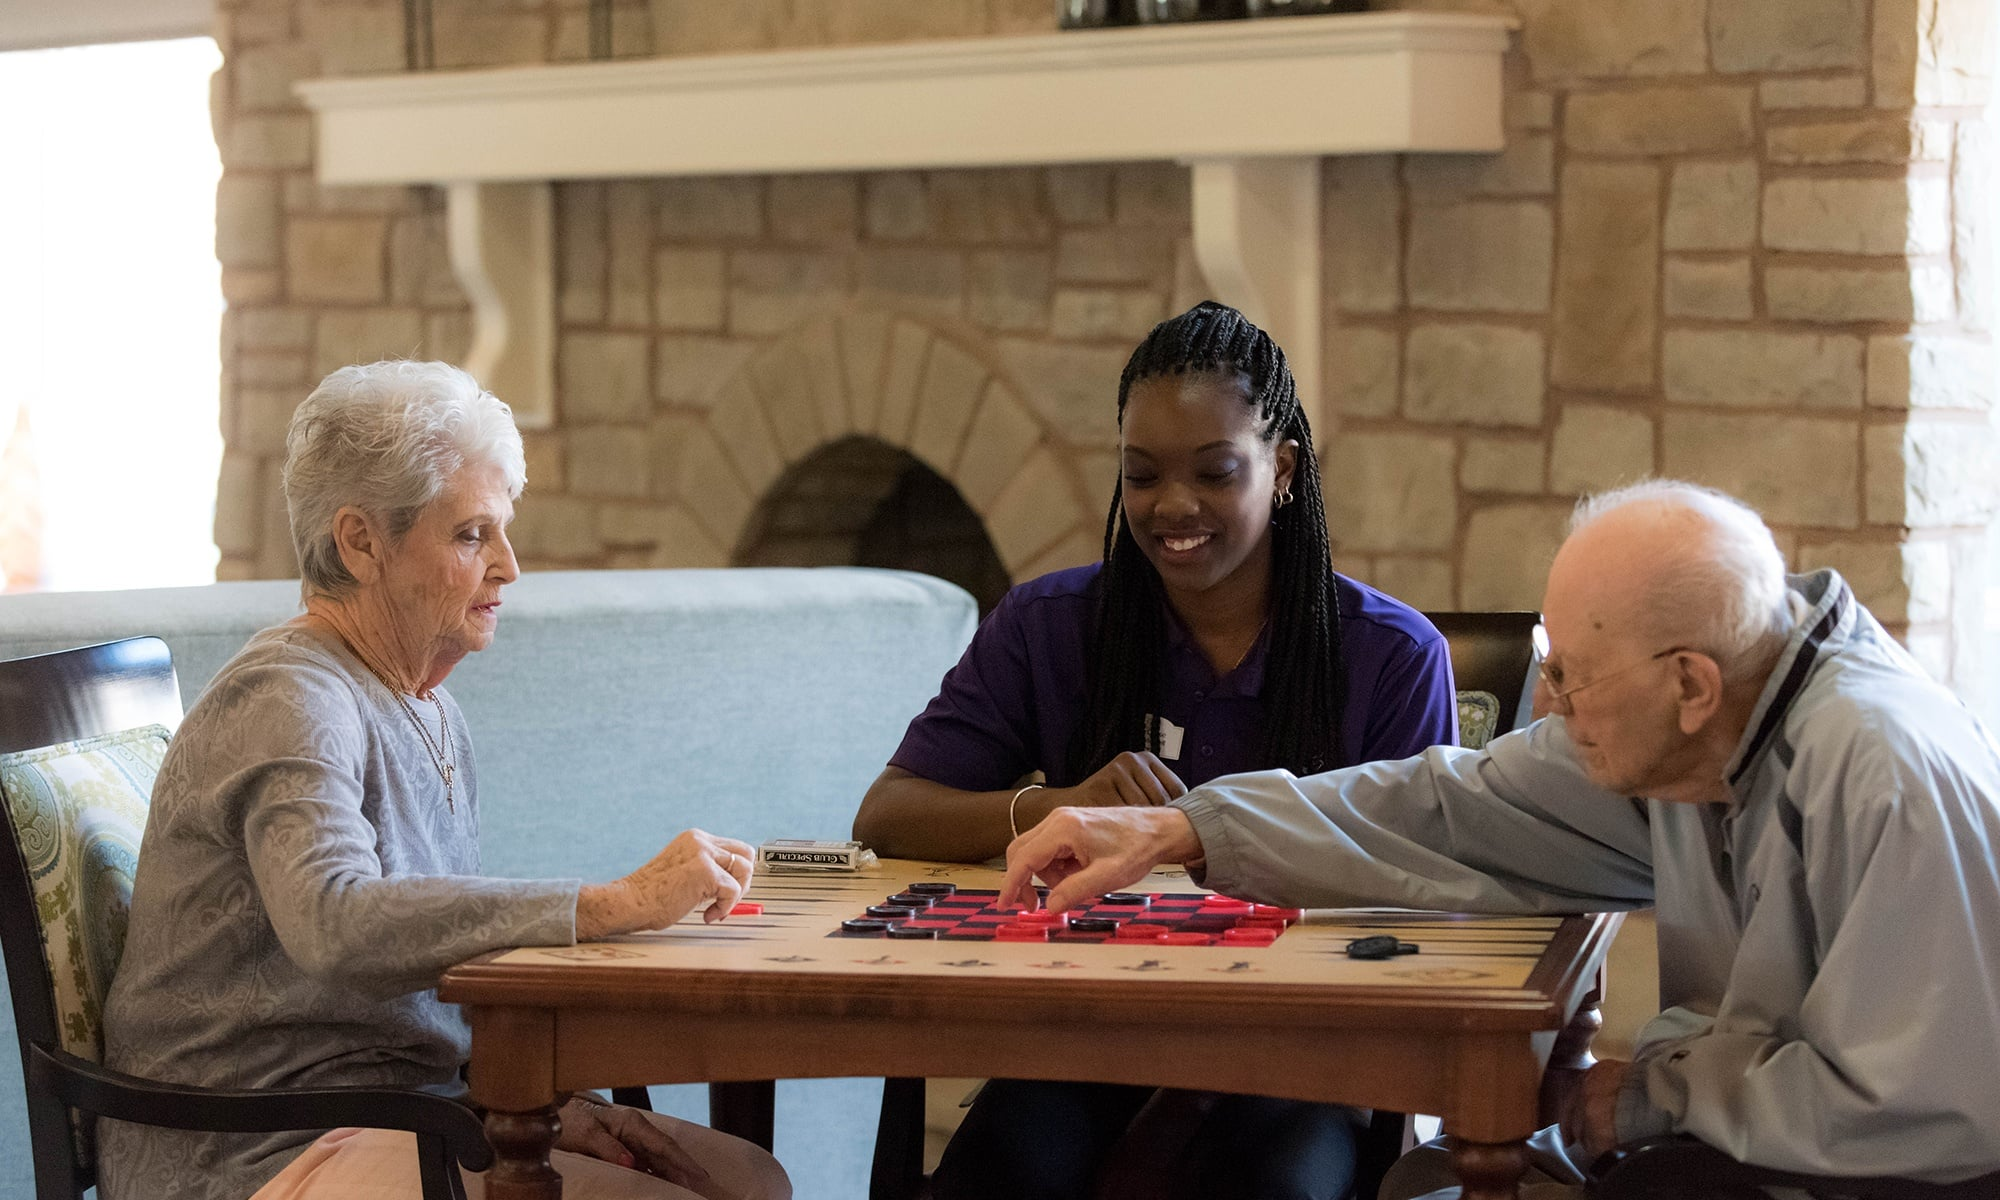 Exquisite senior living facility located in Sterling Heights